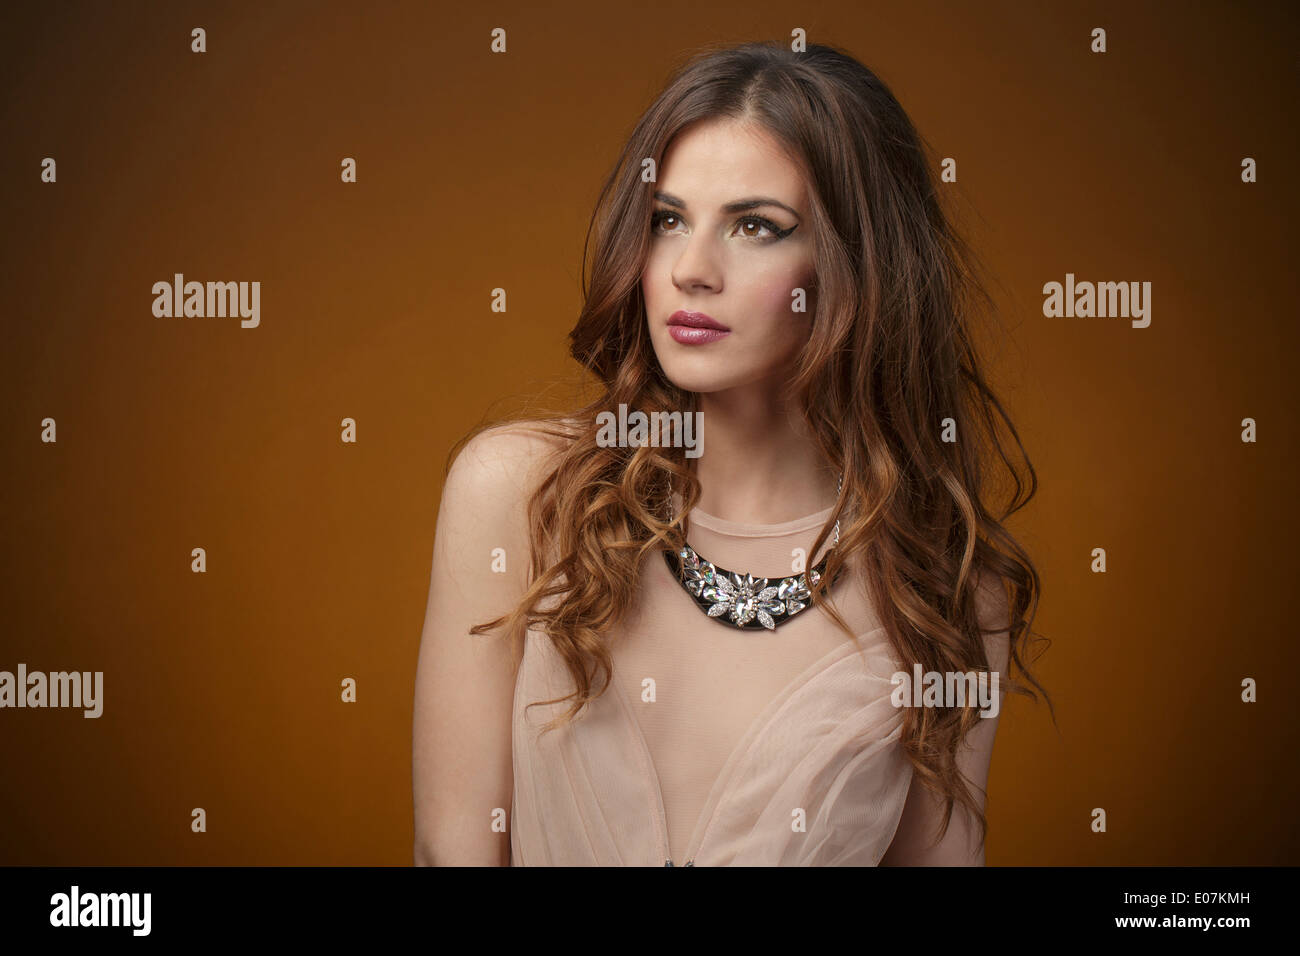 Young woman with long hair, portrait - Stock Image